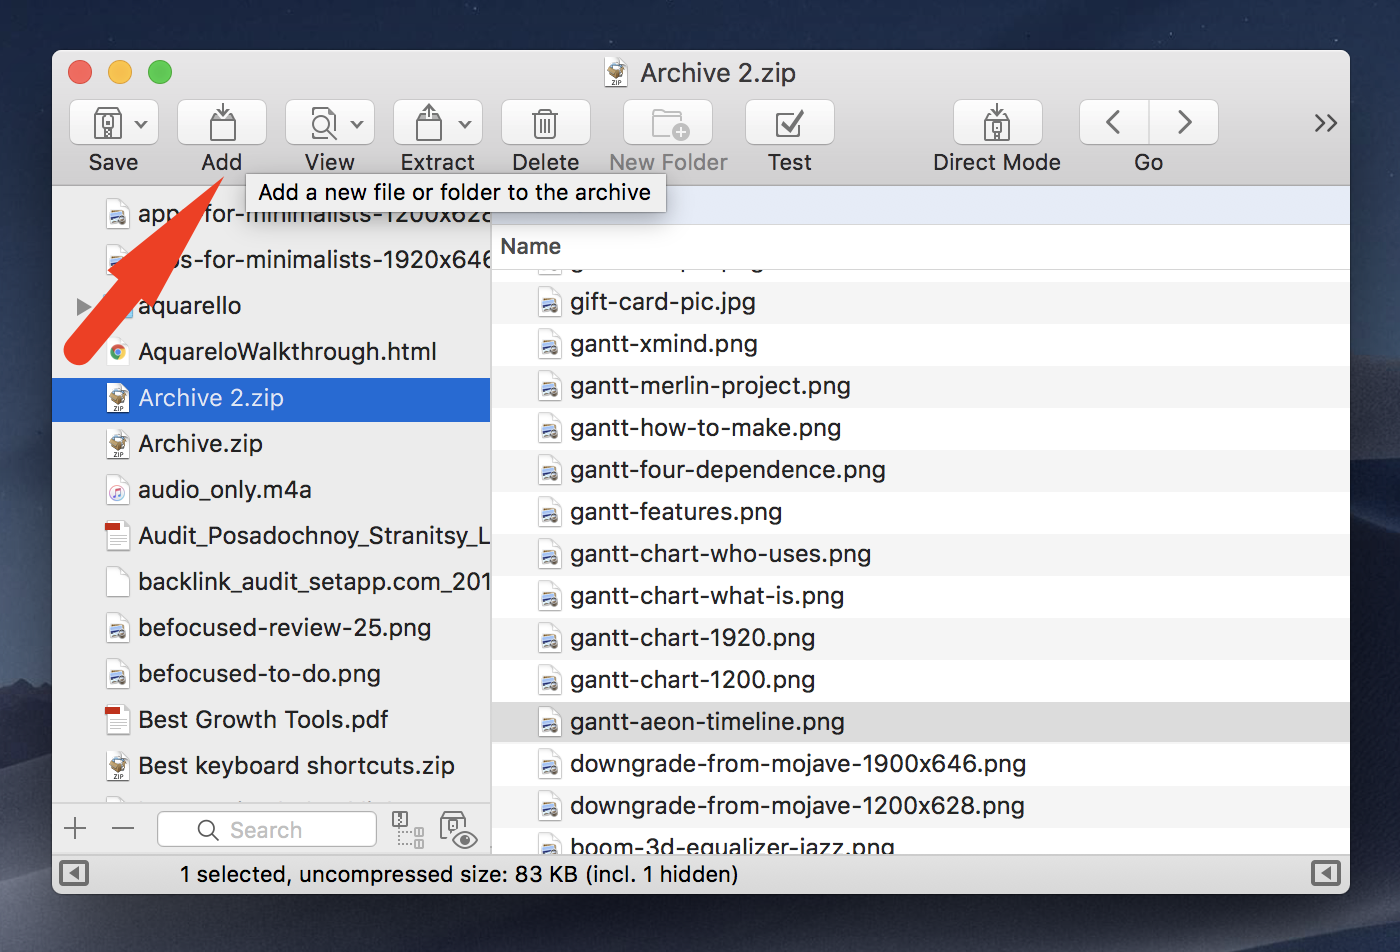 The Easiest Way to Archive Files on a Mac